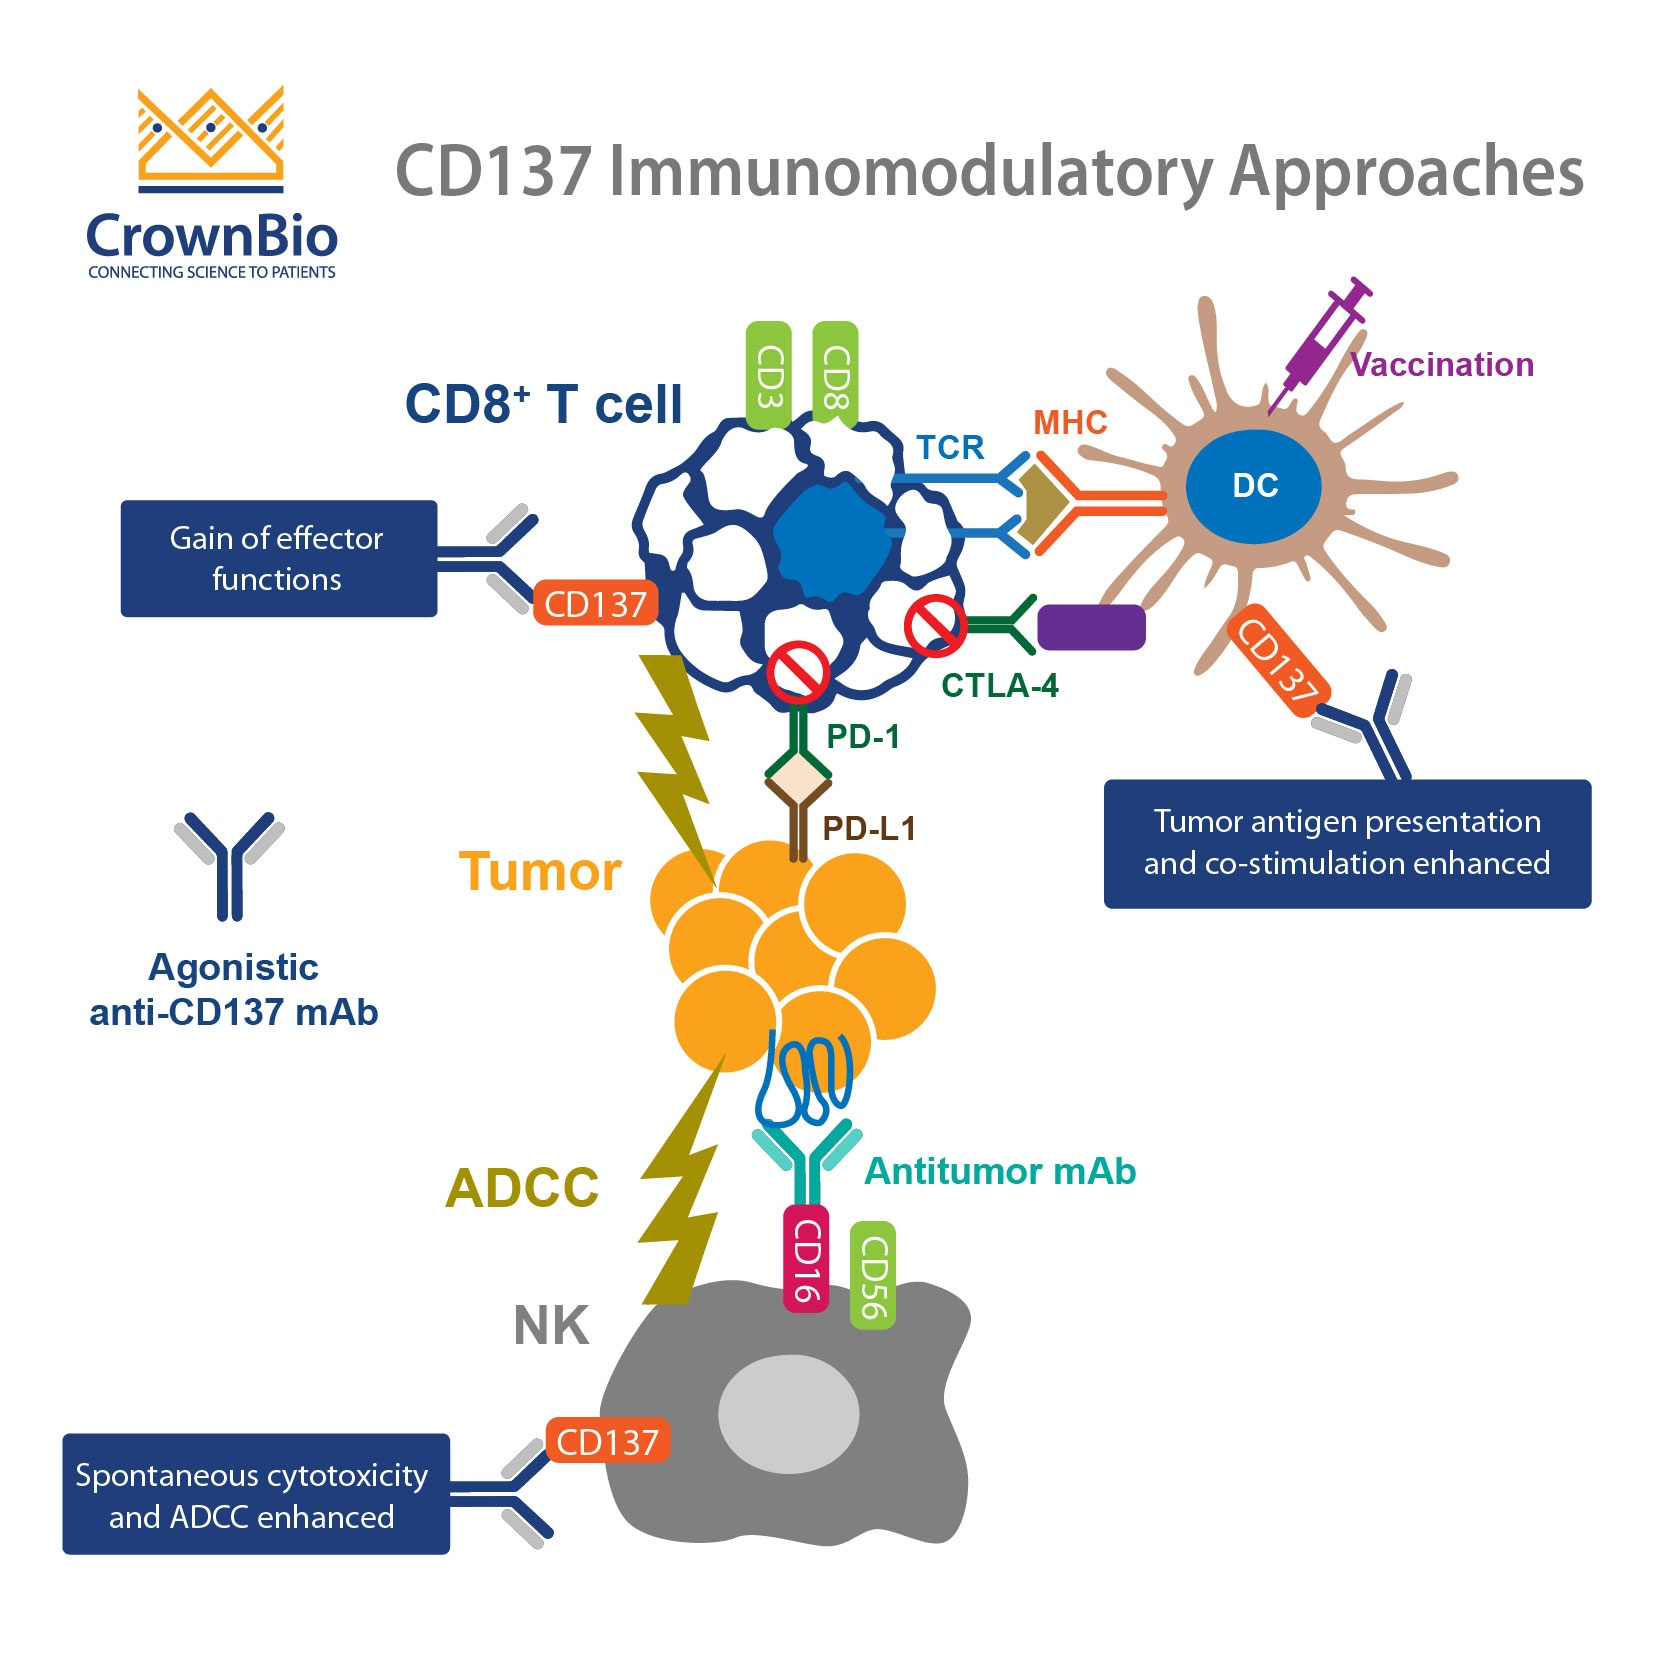 CD137: An Important Target in T Cell Co-Stimulation